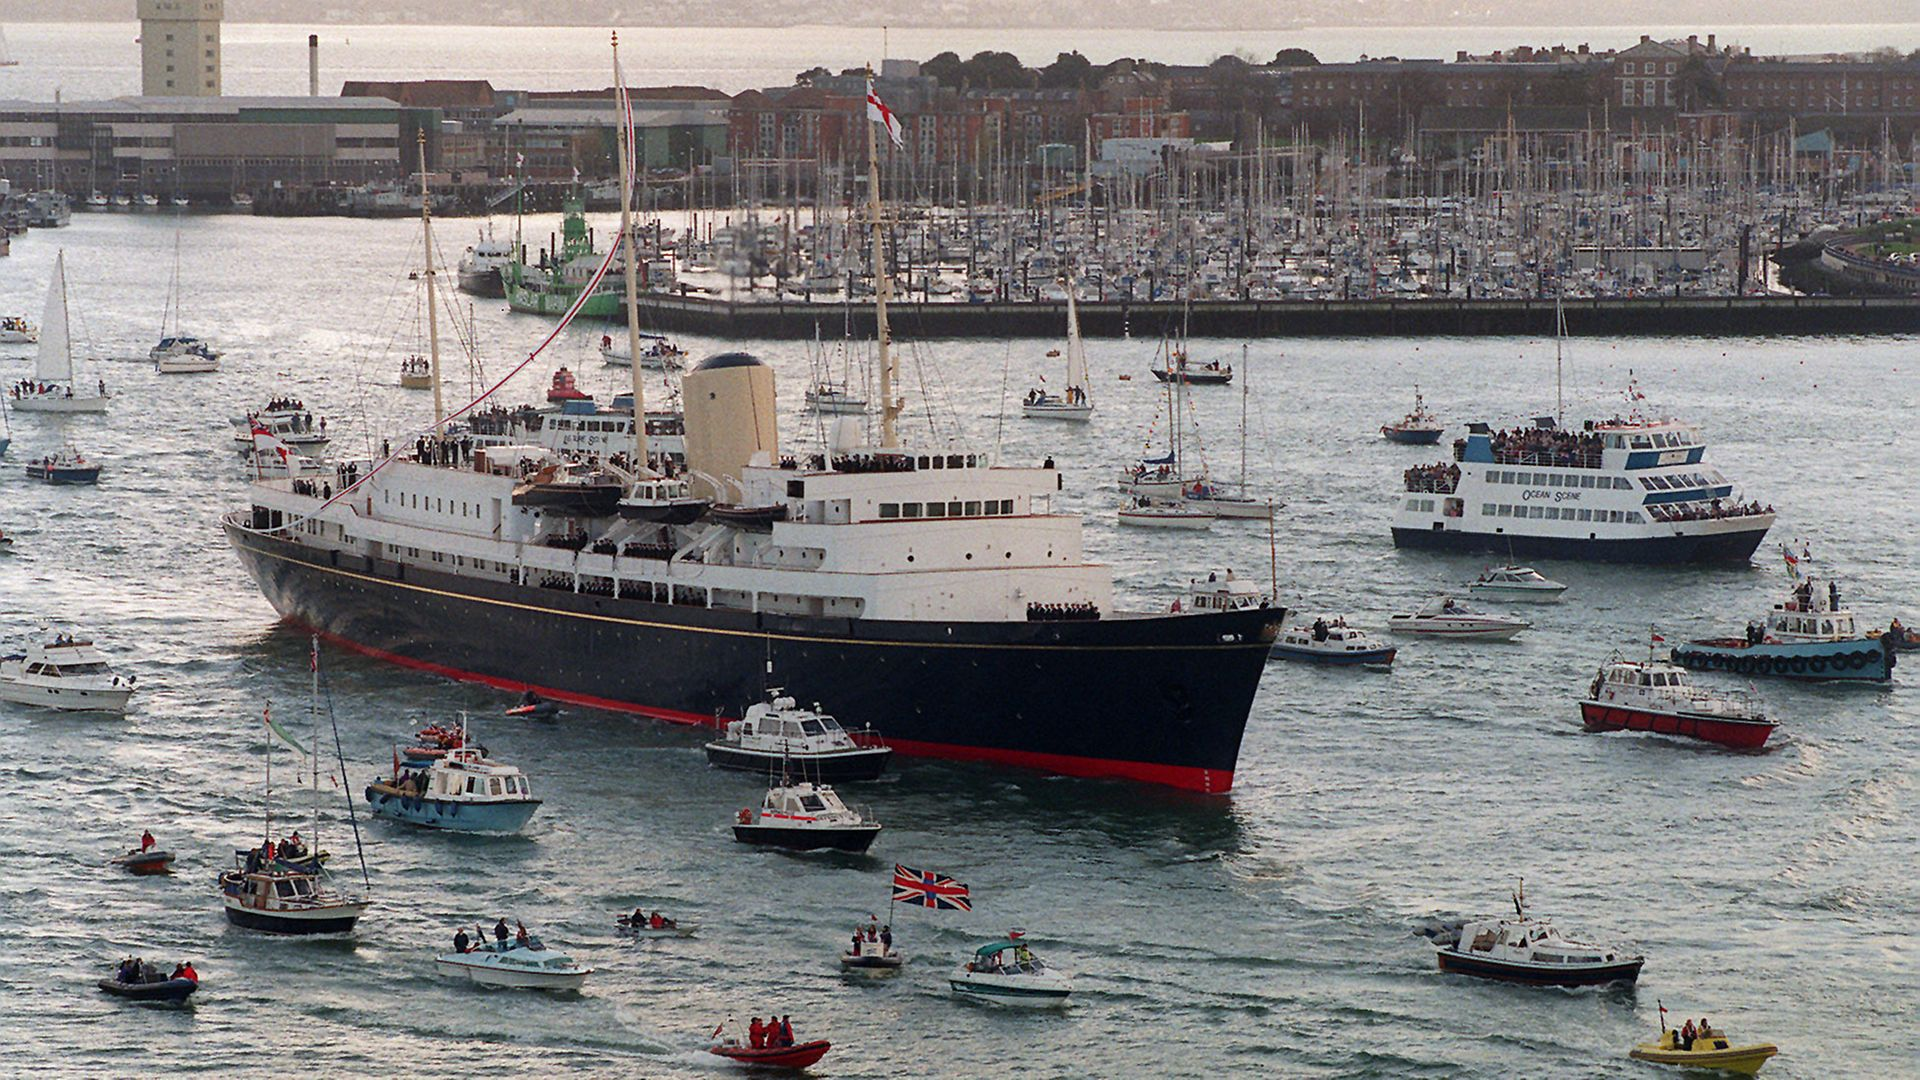 The Royal Yacht Britannia sails into Portsmouth for the last time before she is decommissioned in 1997 - Credit: PA